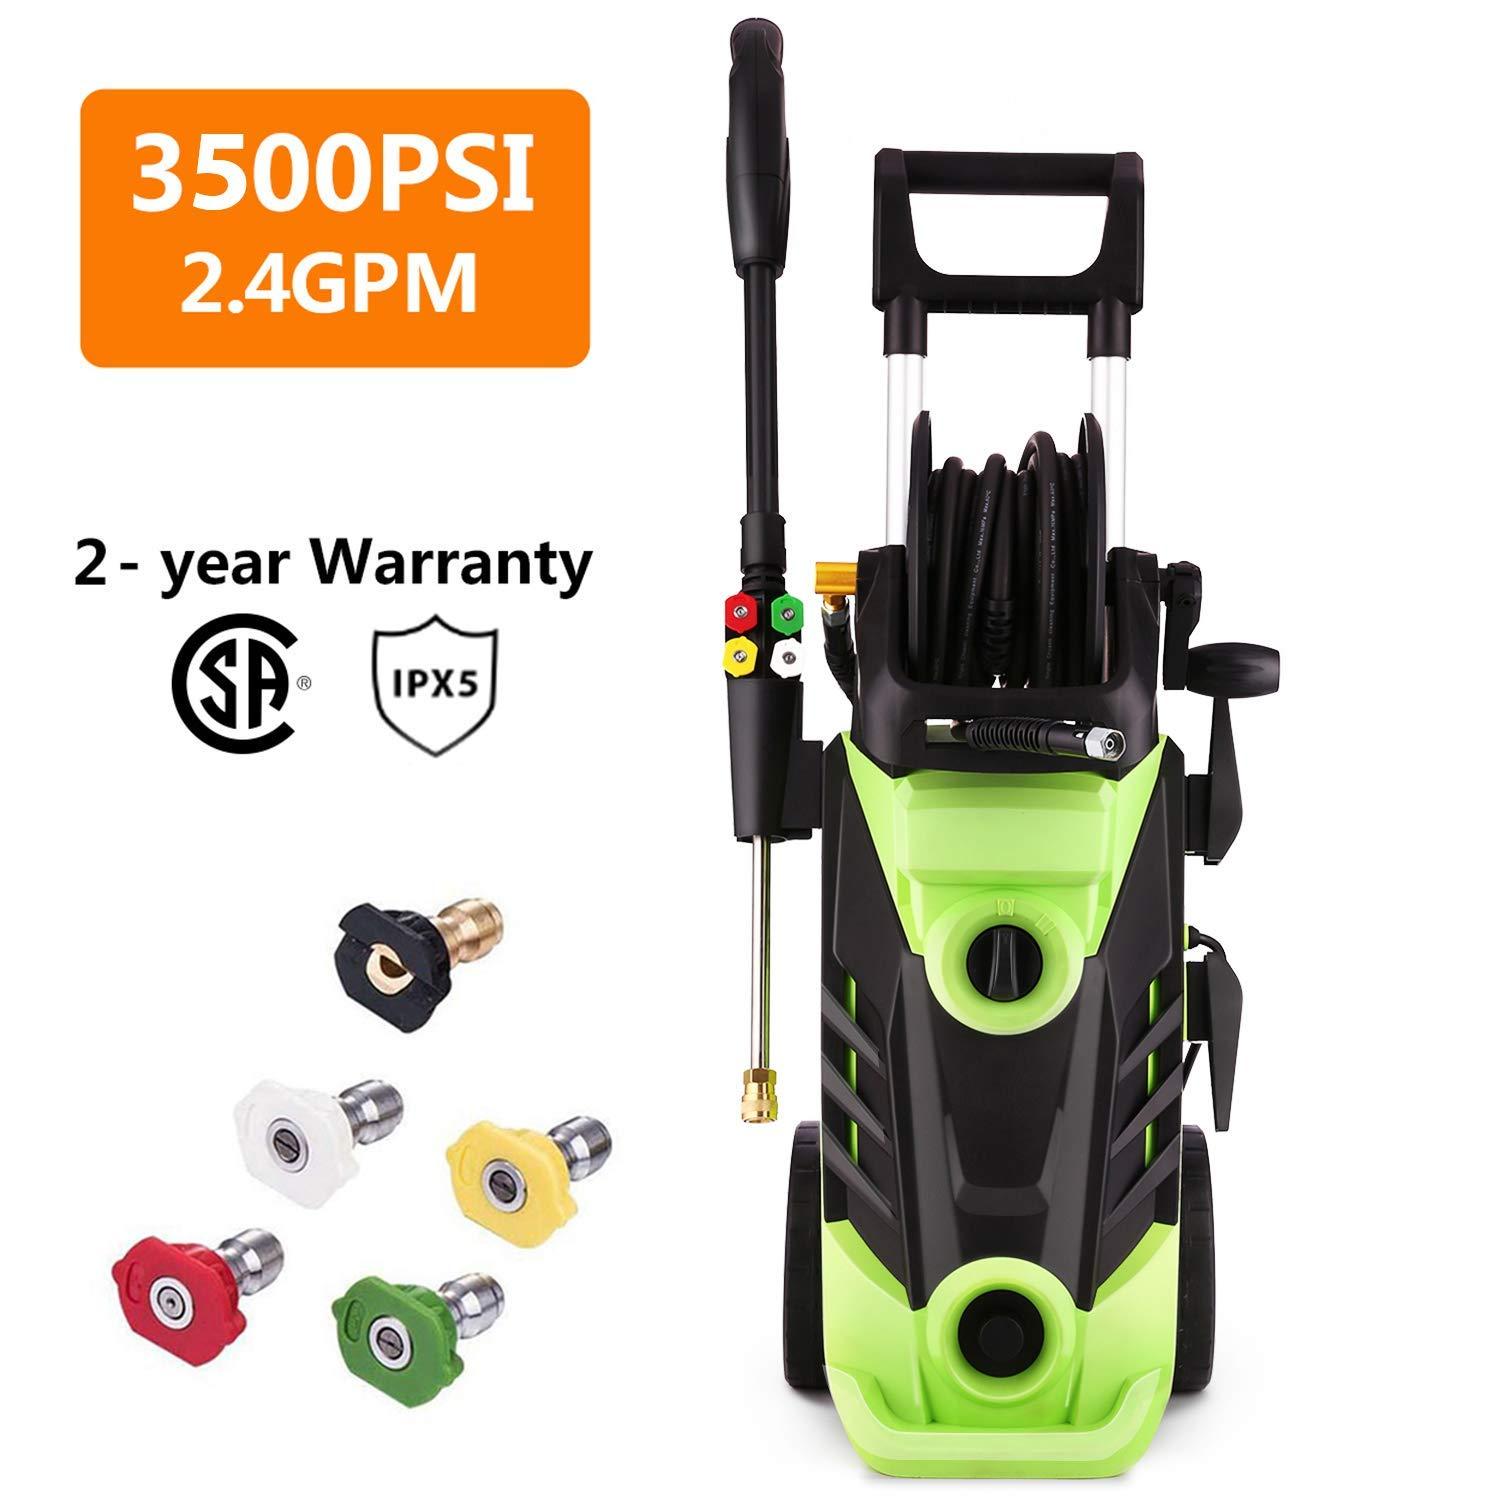 Qiohone 3500 PSI Power Washer Electric Pressure Washer 2.6 GPM 1800W Electric Power Washer Cleaner with Hose Reel and 4 Nozzles